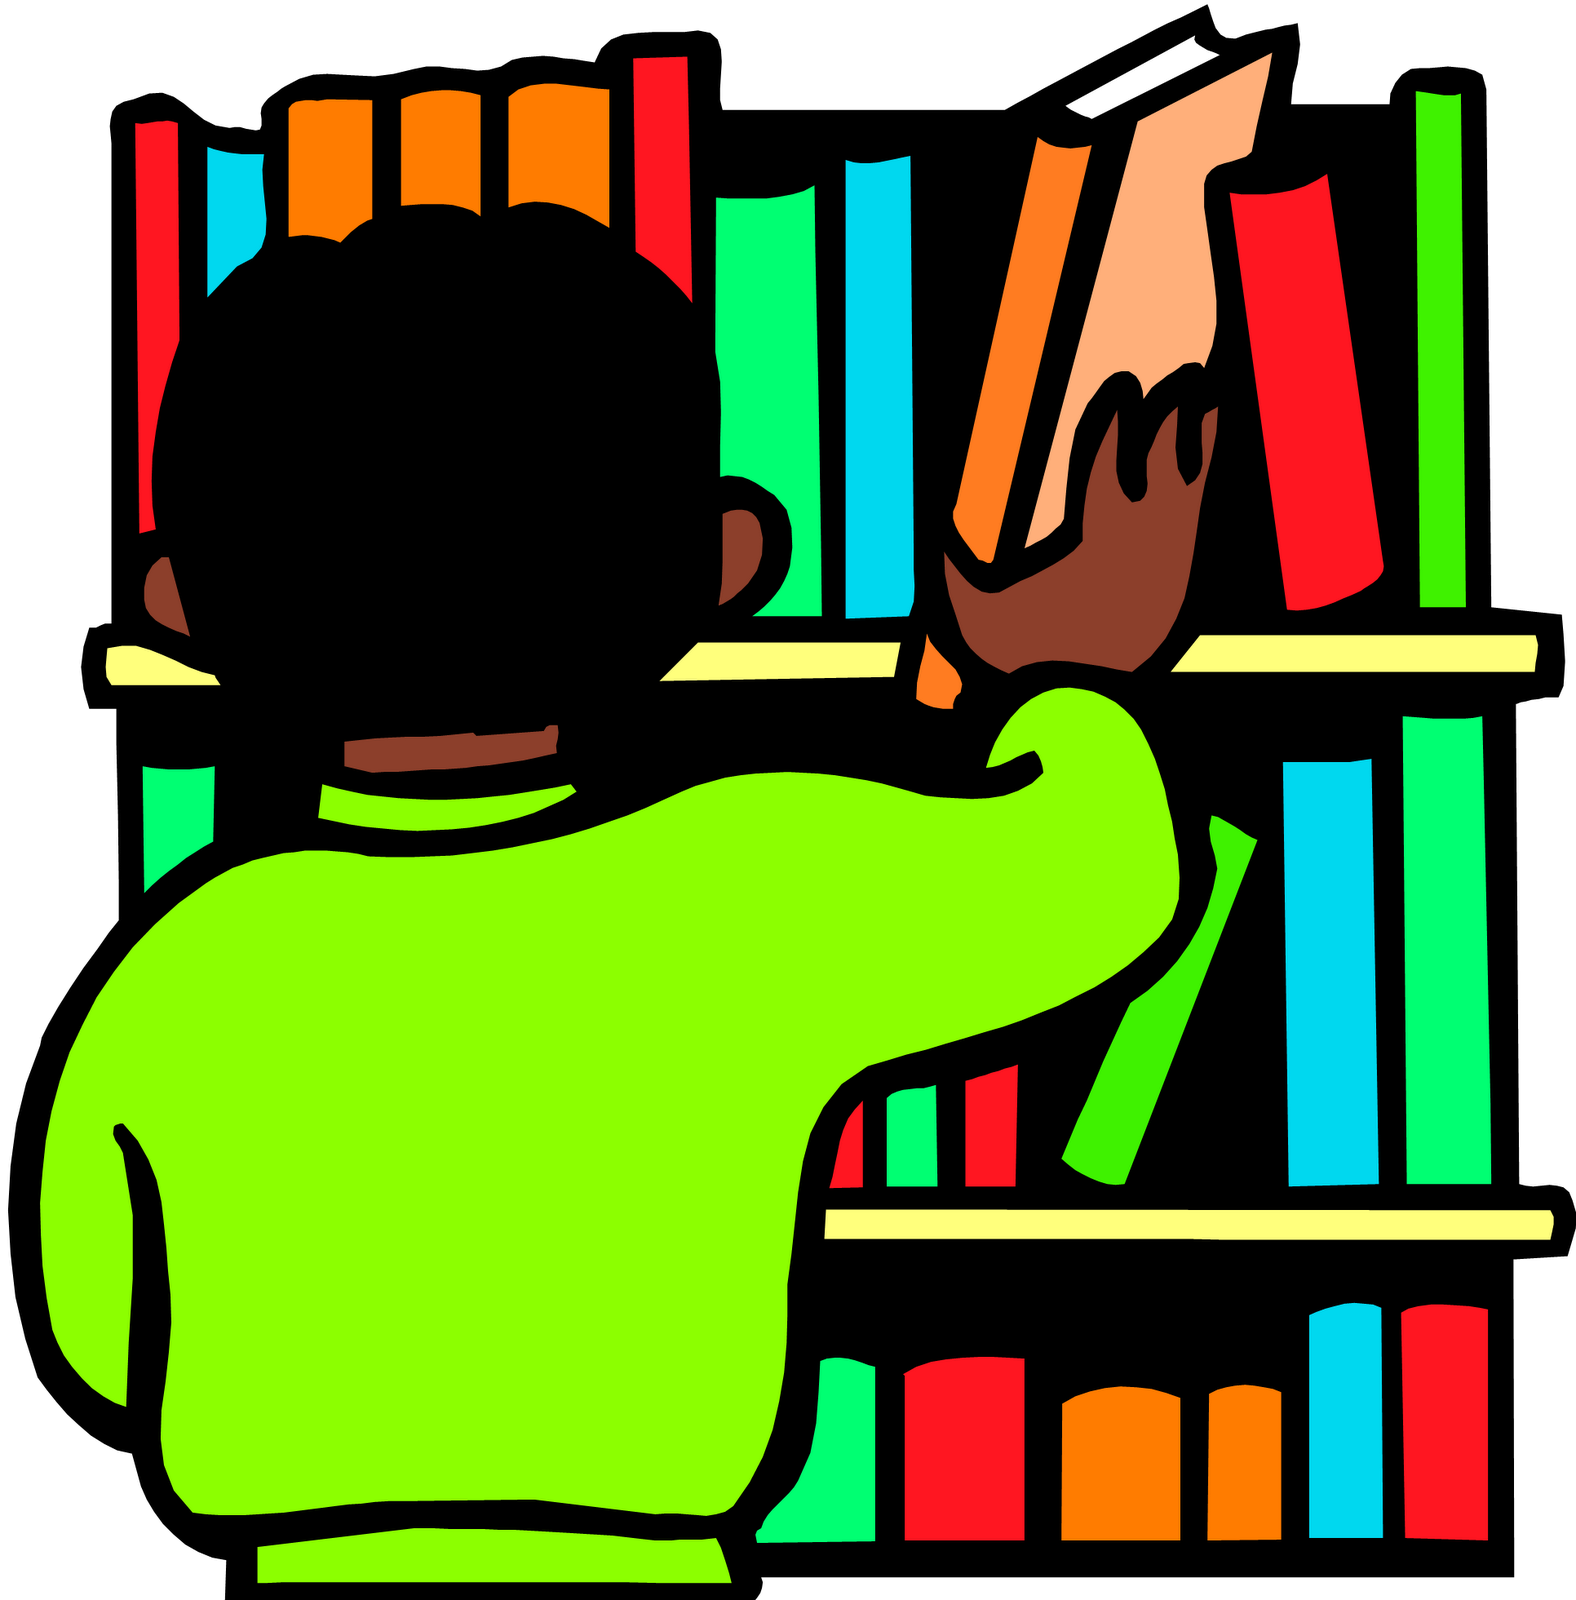 Dewey decimal classification library. Librarian clipart shelve